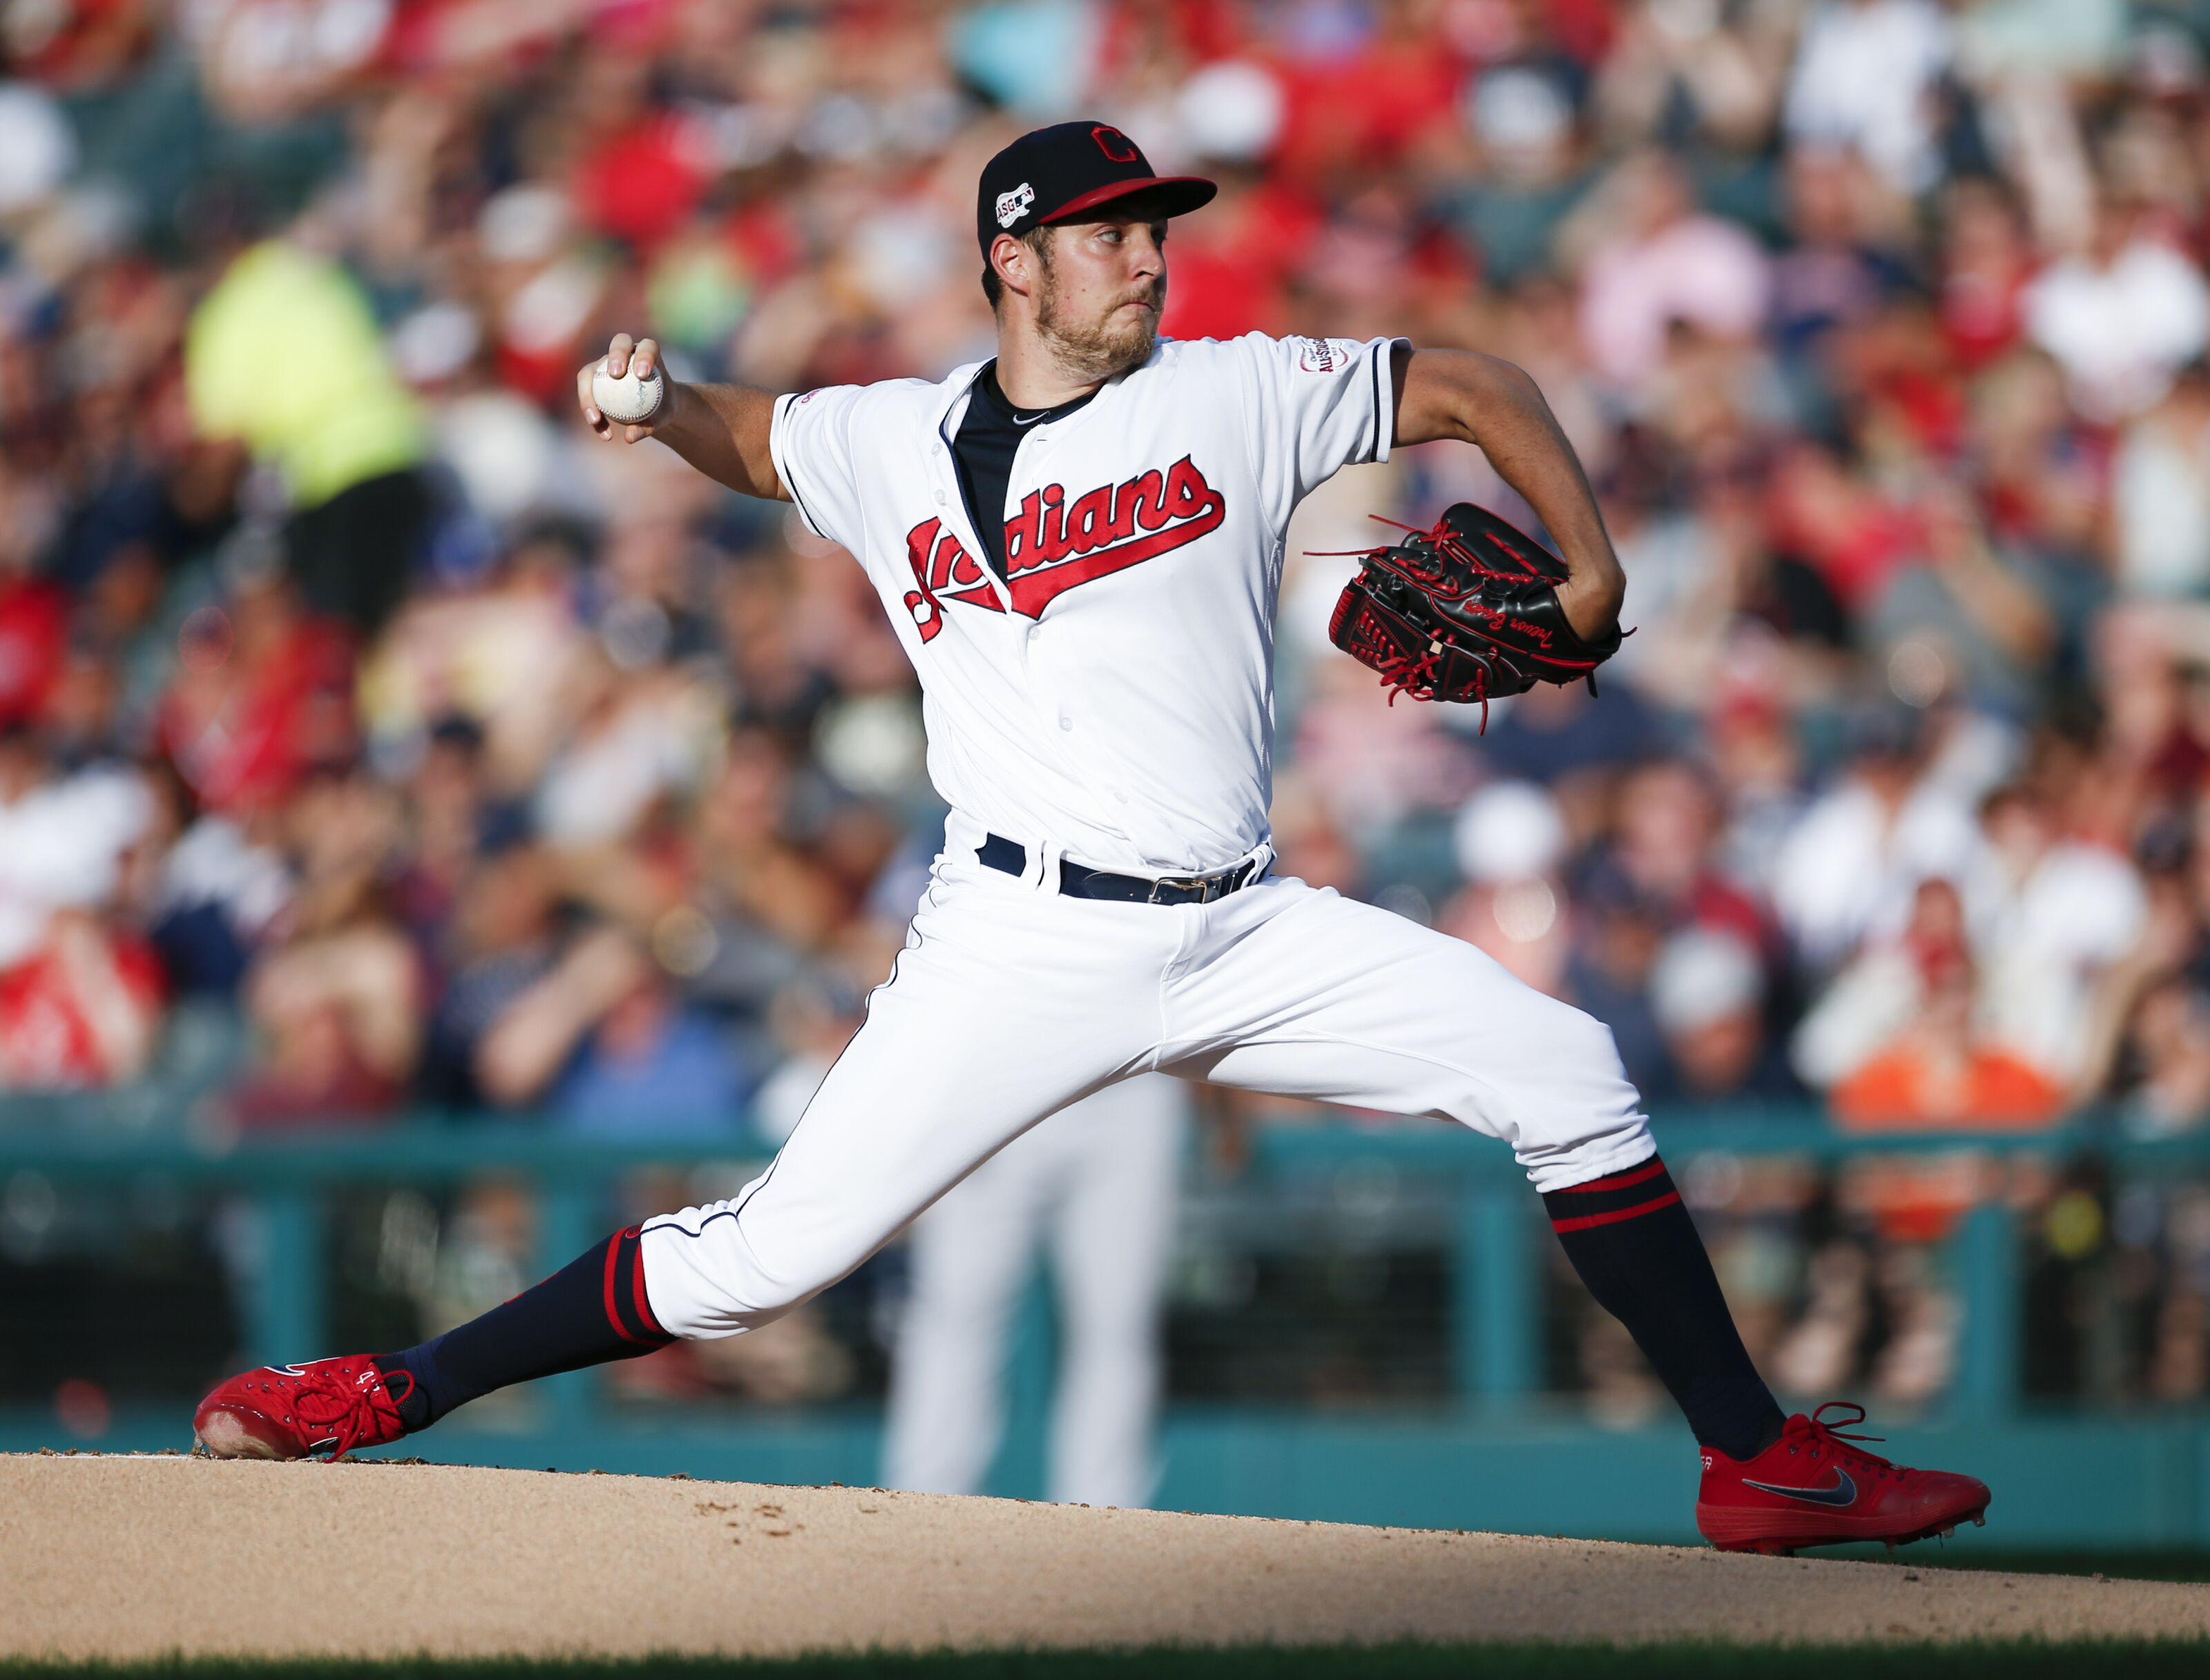 Trade rumors: Teams say Cleveland Indians place high value on players